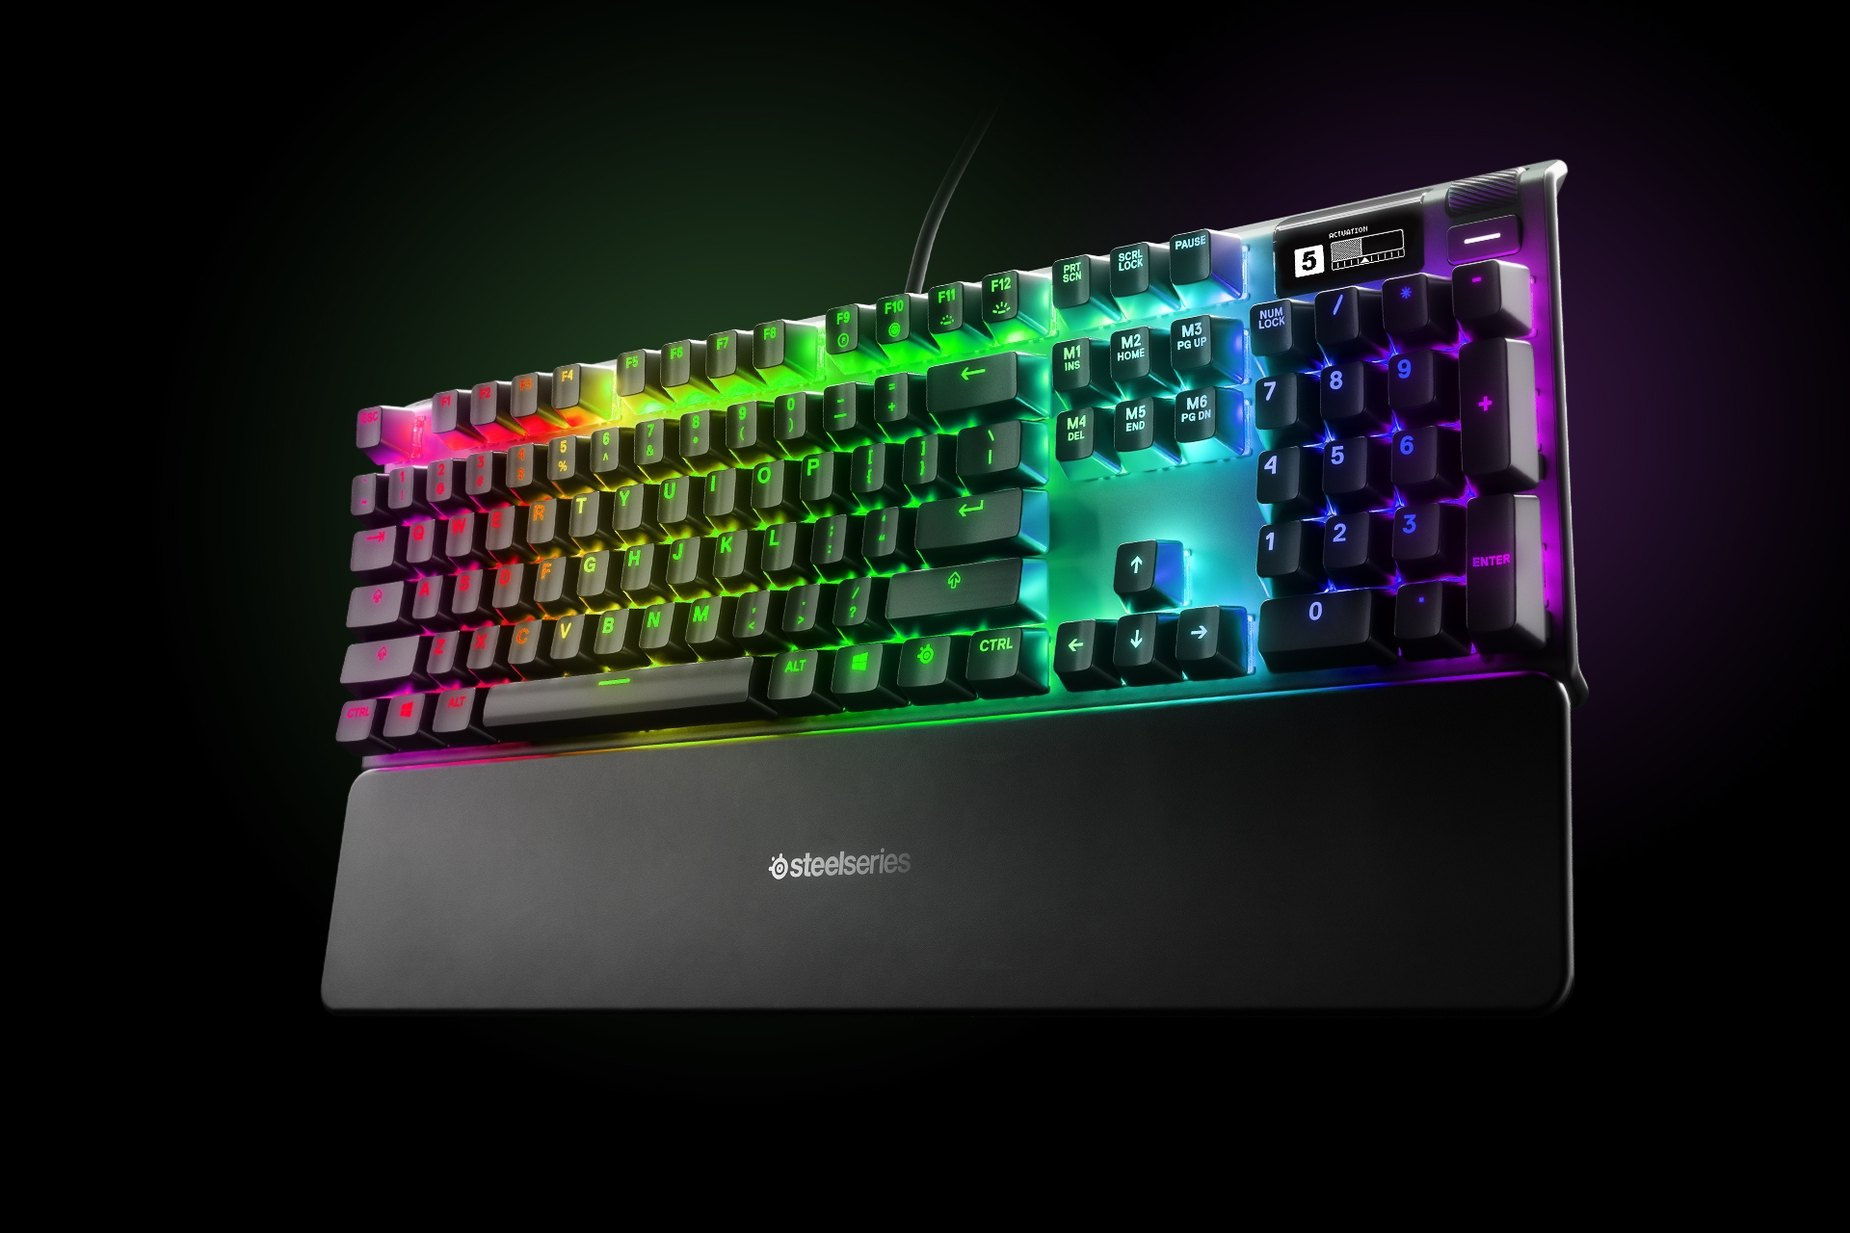 Korean - Apex Pro gaming keyboard with the illumination lit up on dark background, also shows the OLED screen and controls used to change settings, switch actuation, and adjust audio